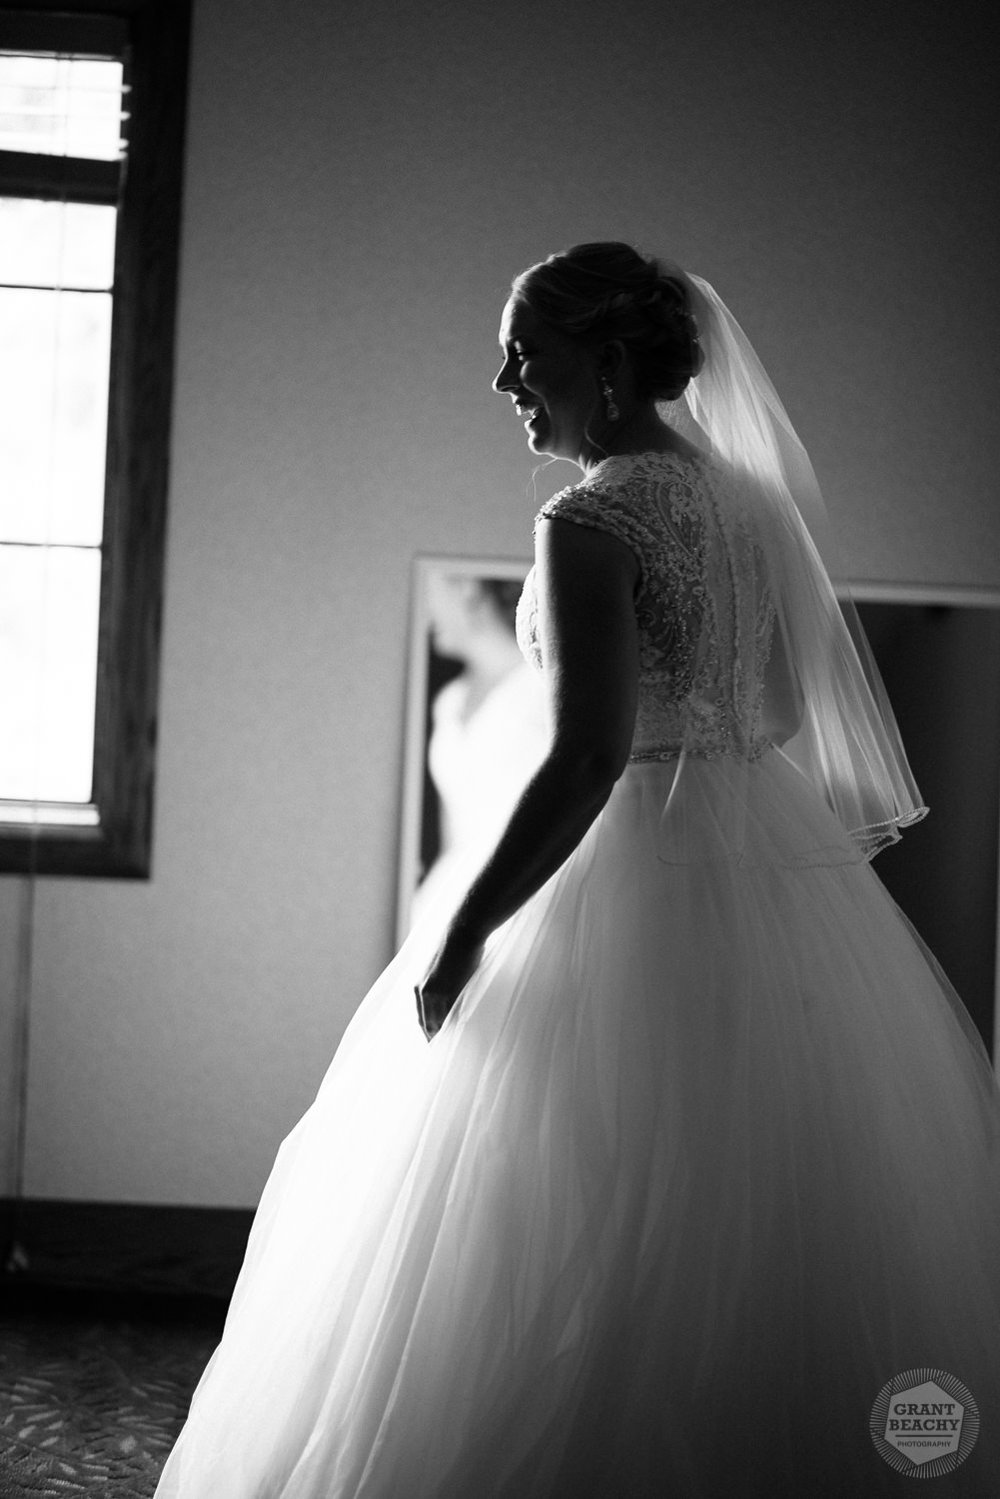 Grant Beachy wedding photography elkhart, south bend, chicago, goshen-11.jpg